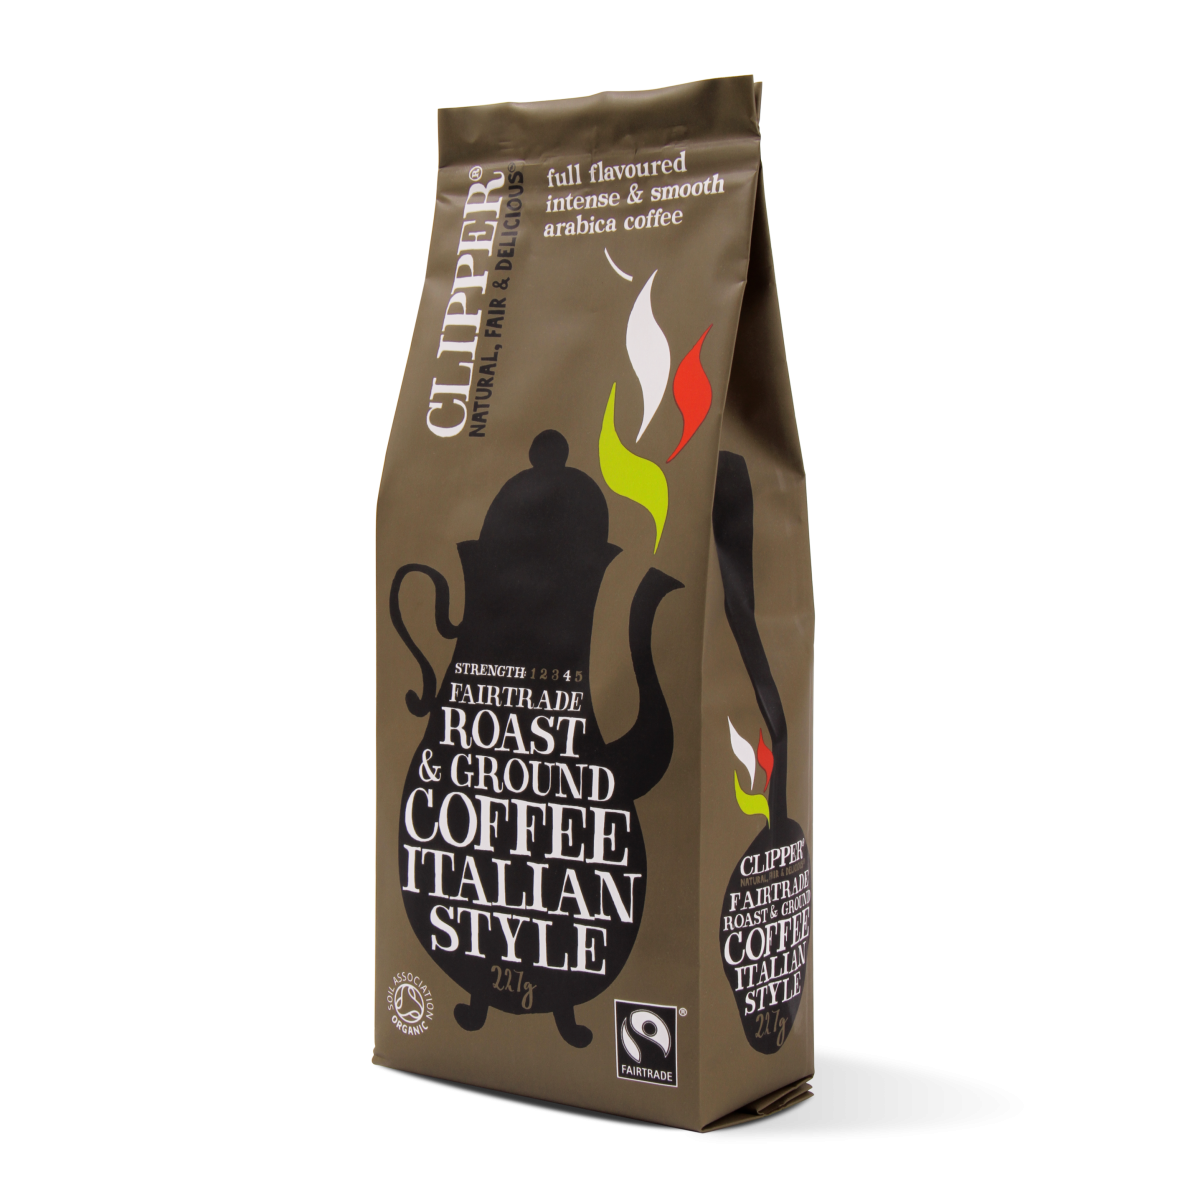 Fairtrade roast ground italian style coffee